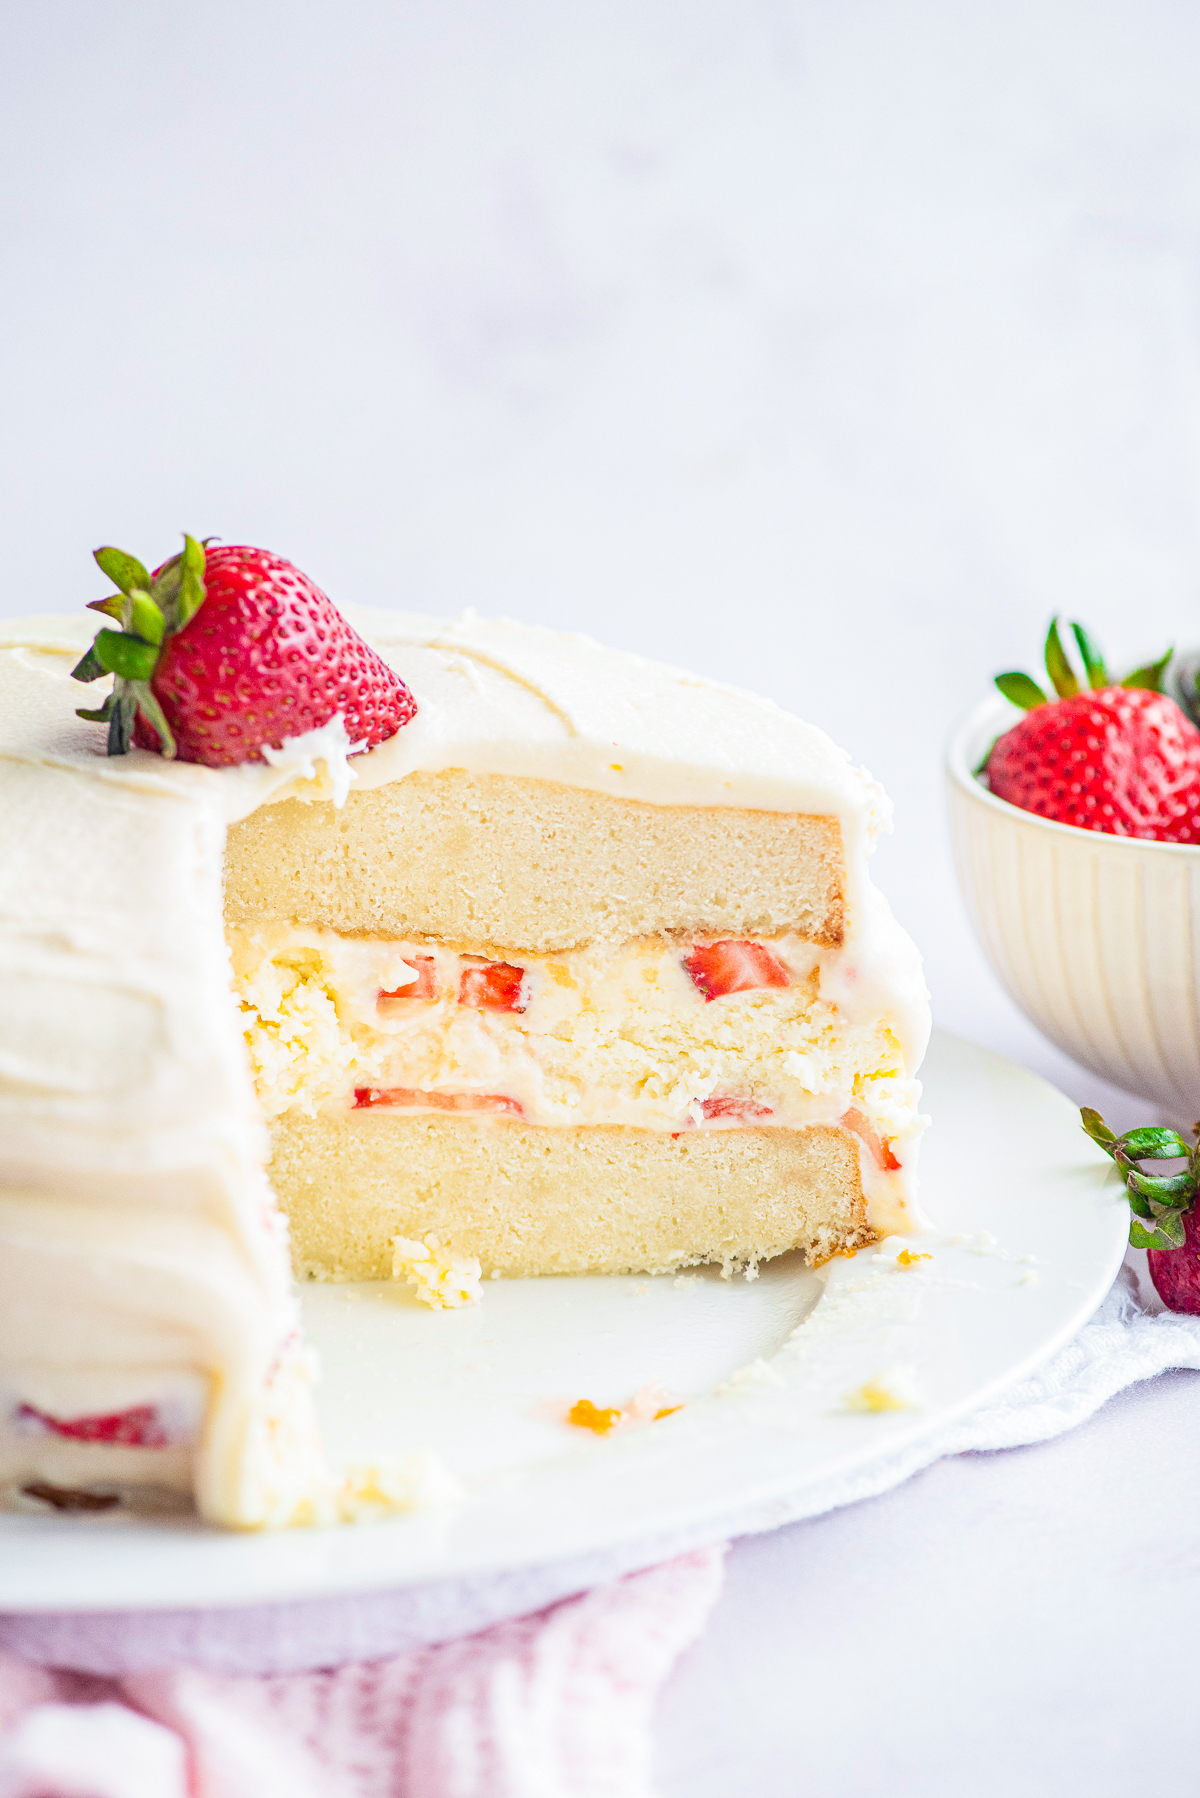 Inside of assembled Cheesecake Cake on cake stand